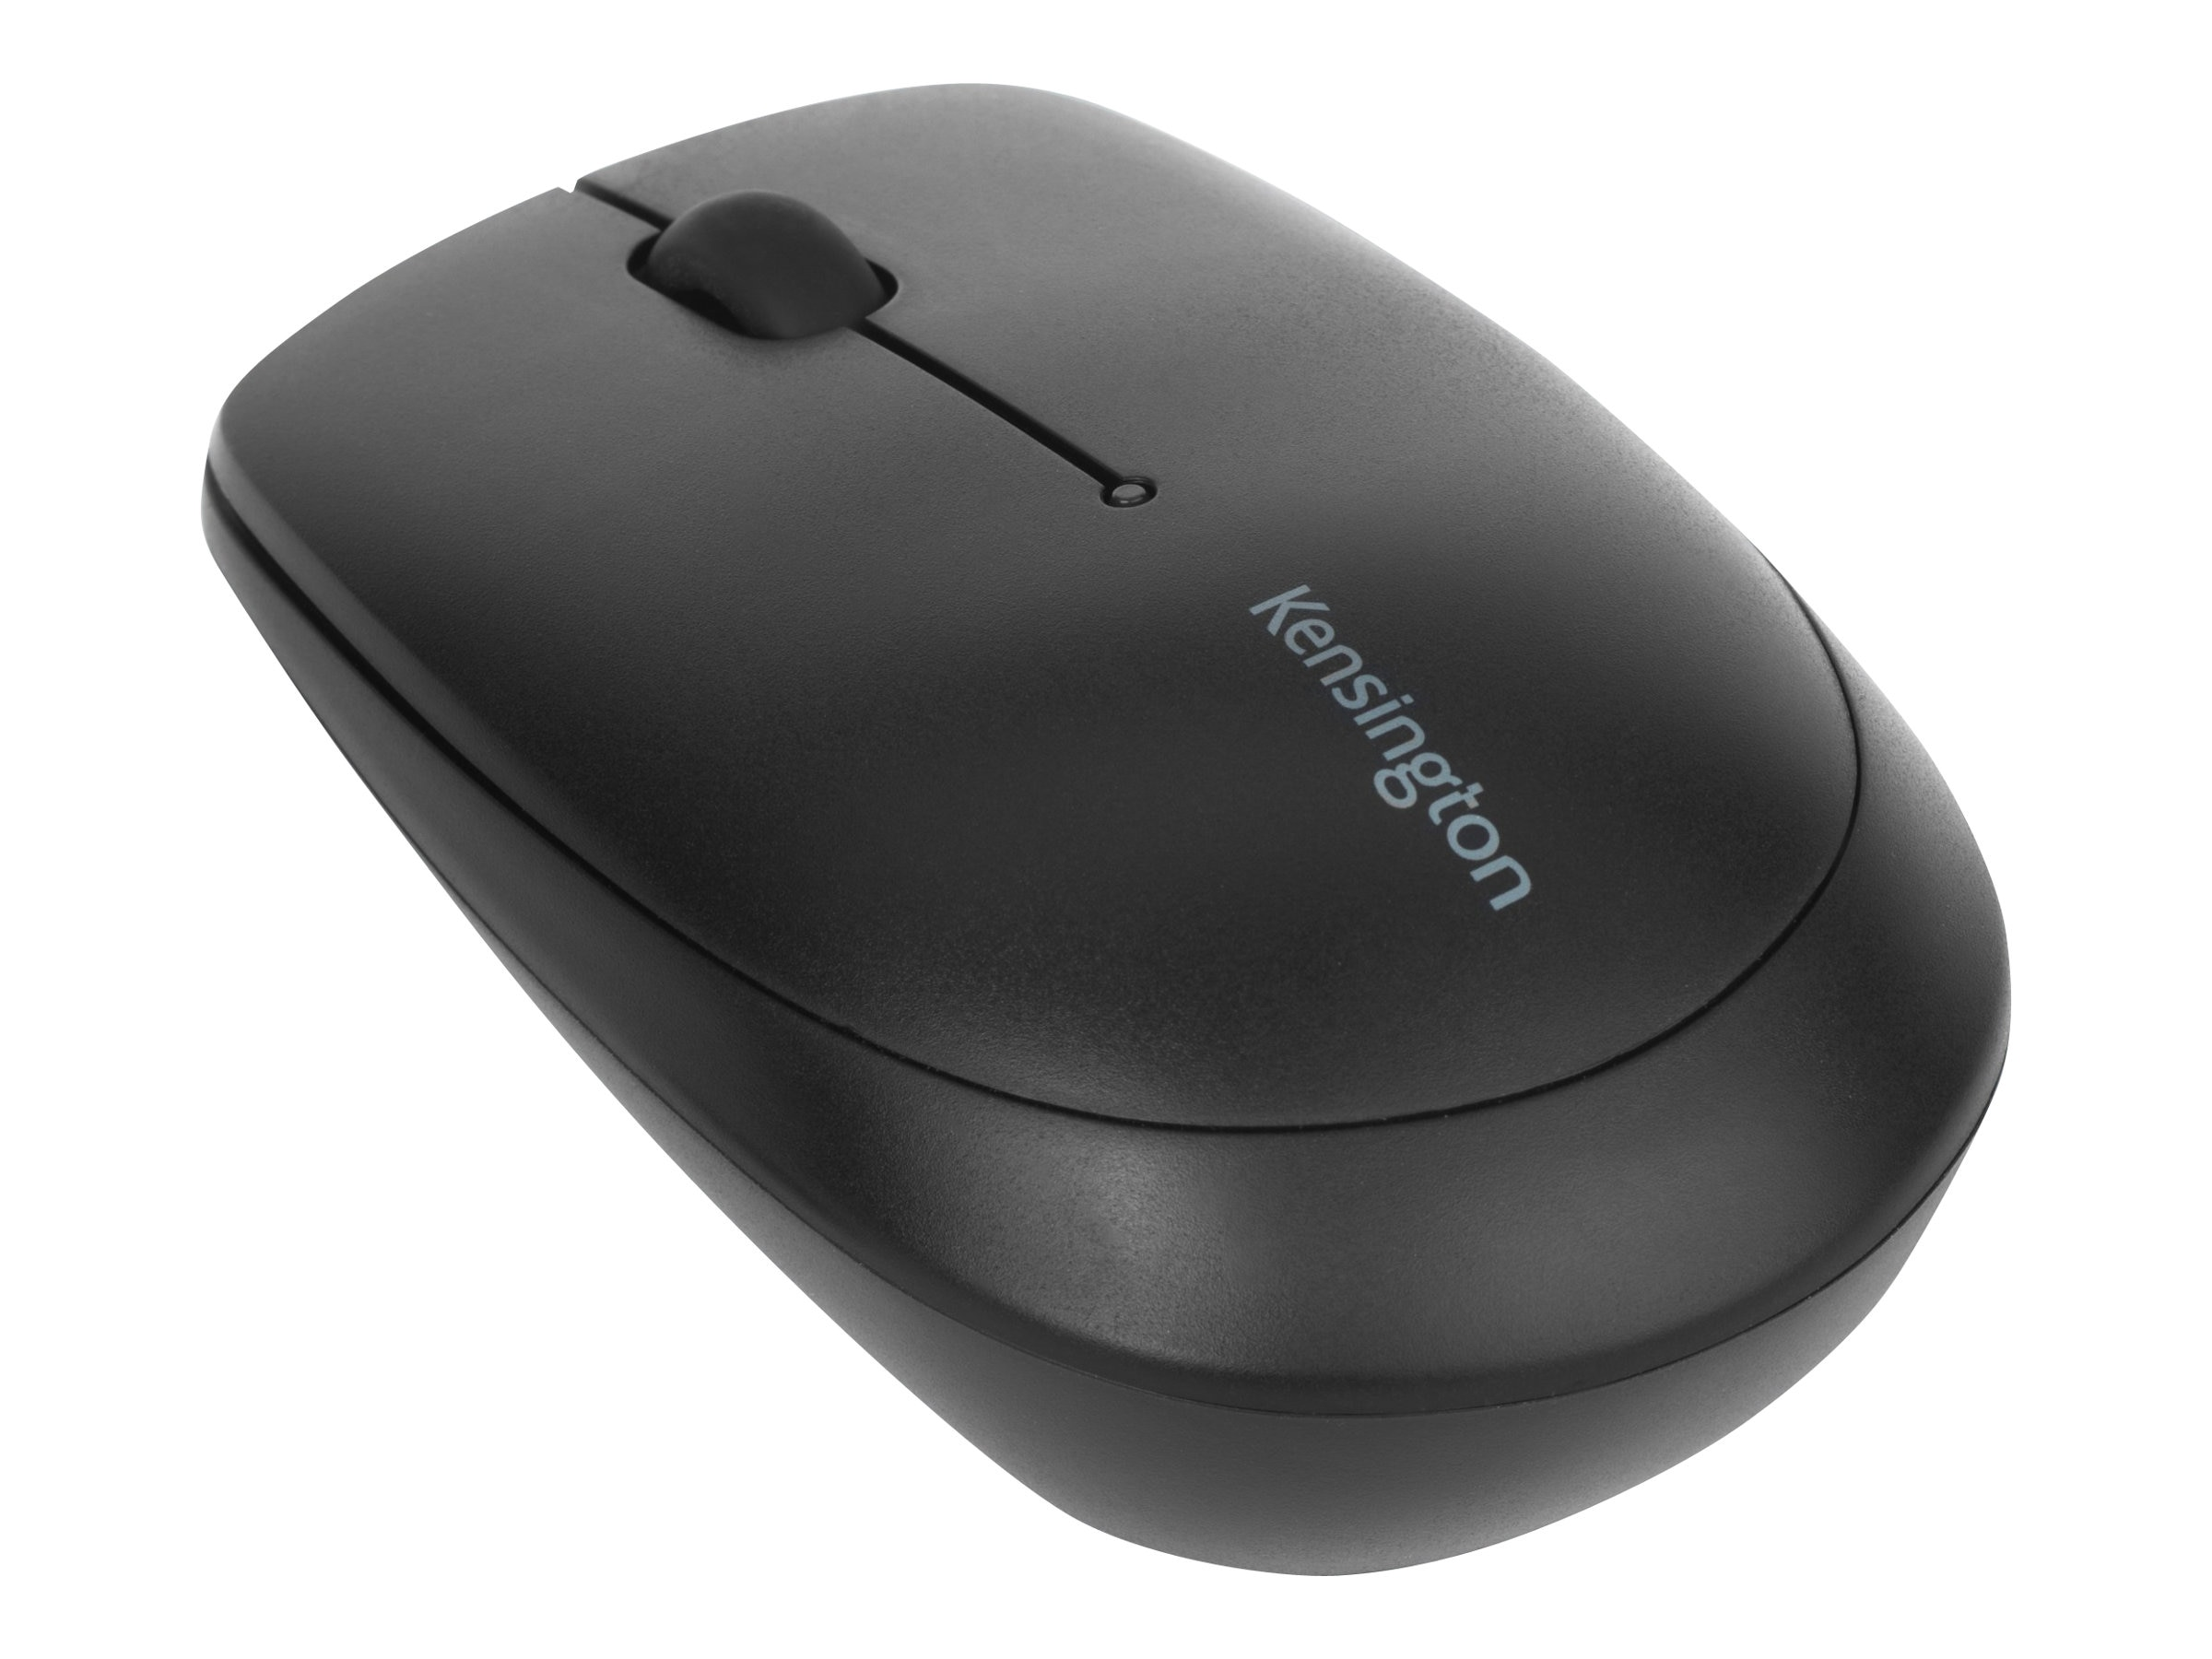 Kensington Pro Fit Bluetooth Mobile Mouse, Black